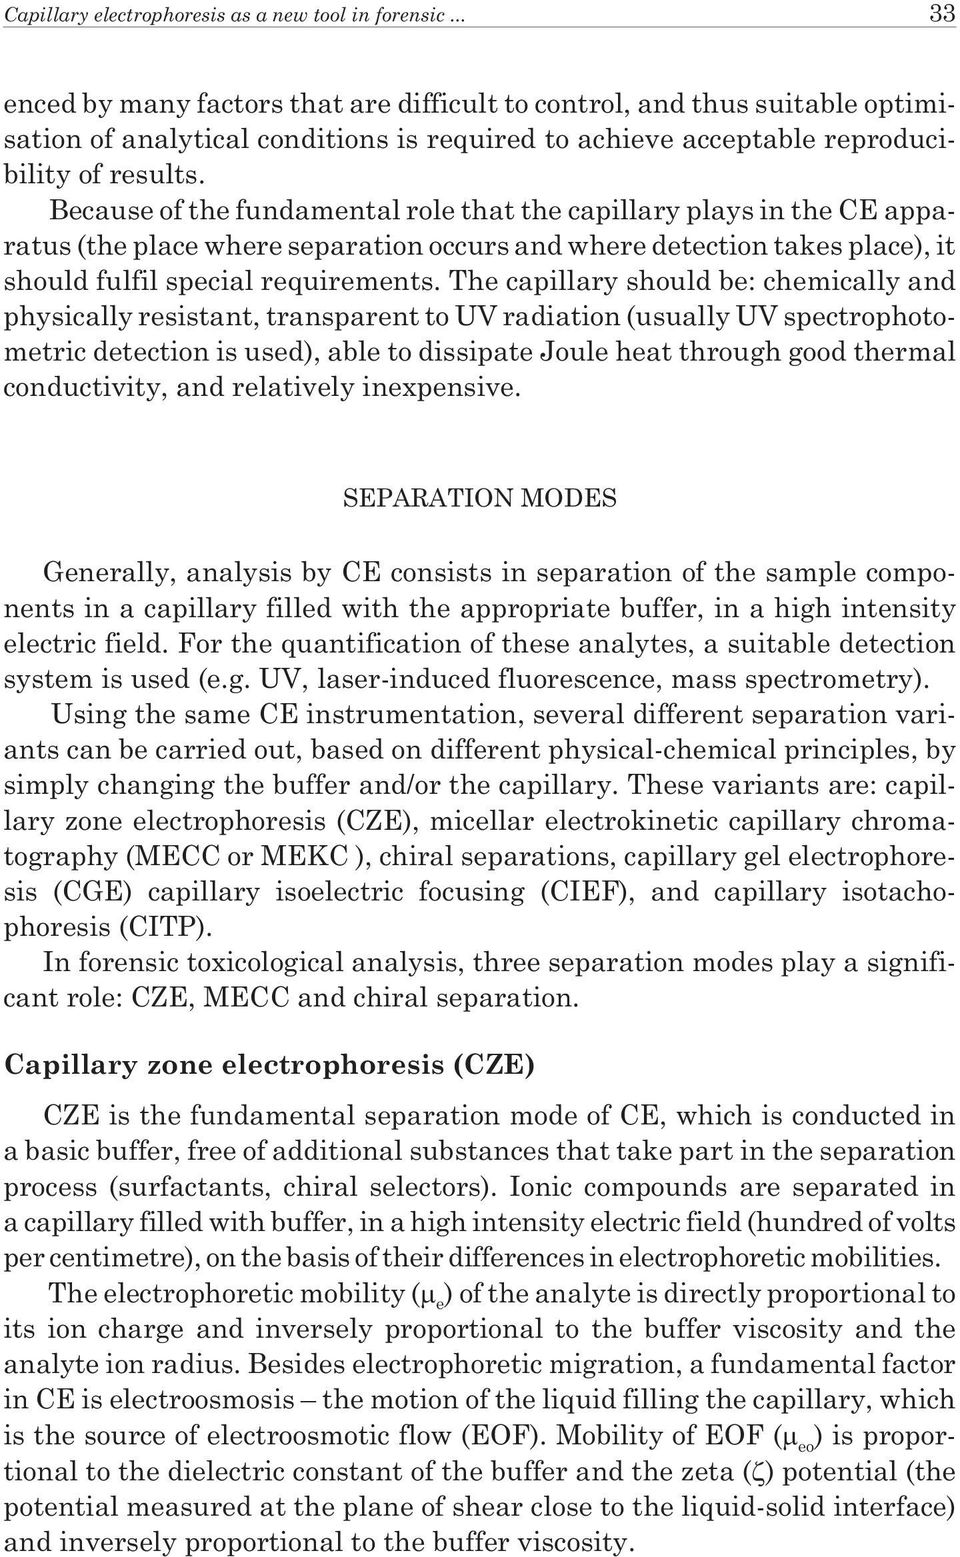 Because of the fundamental role that the capillary plays in the CE apparatus (the place where separation occurs and where detection takes place), it should fulfil special requirements.